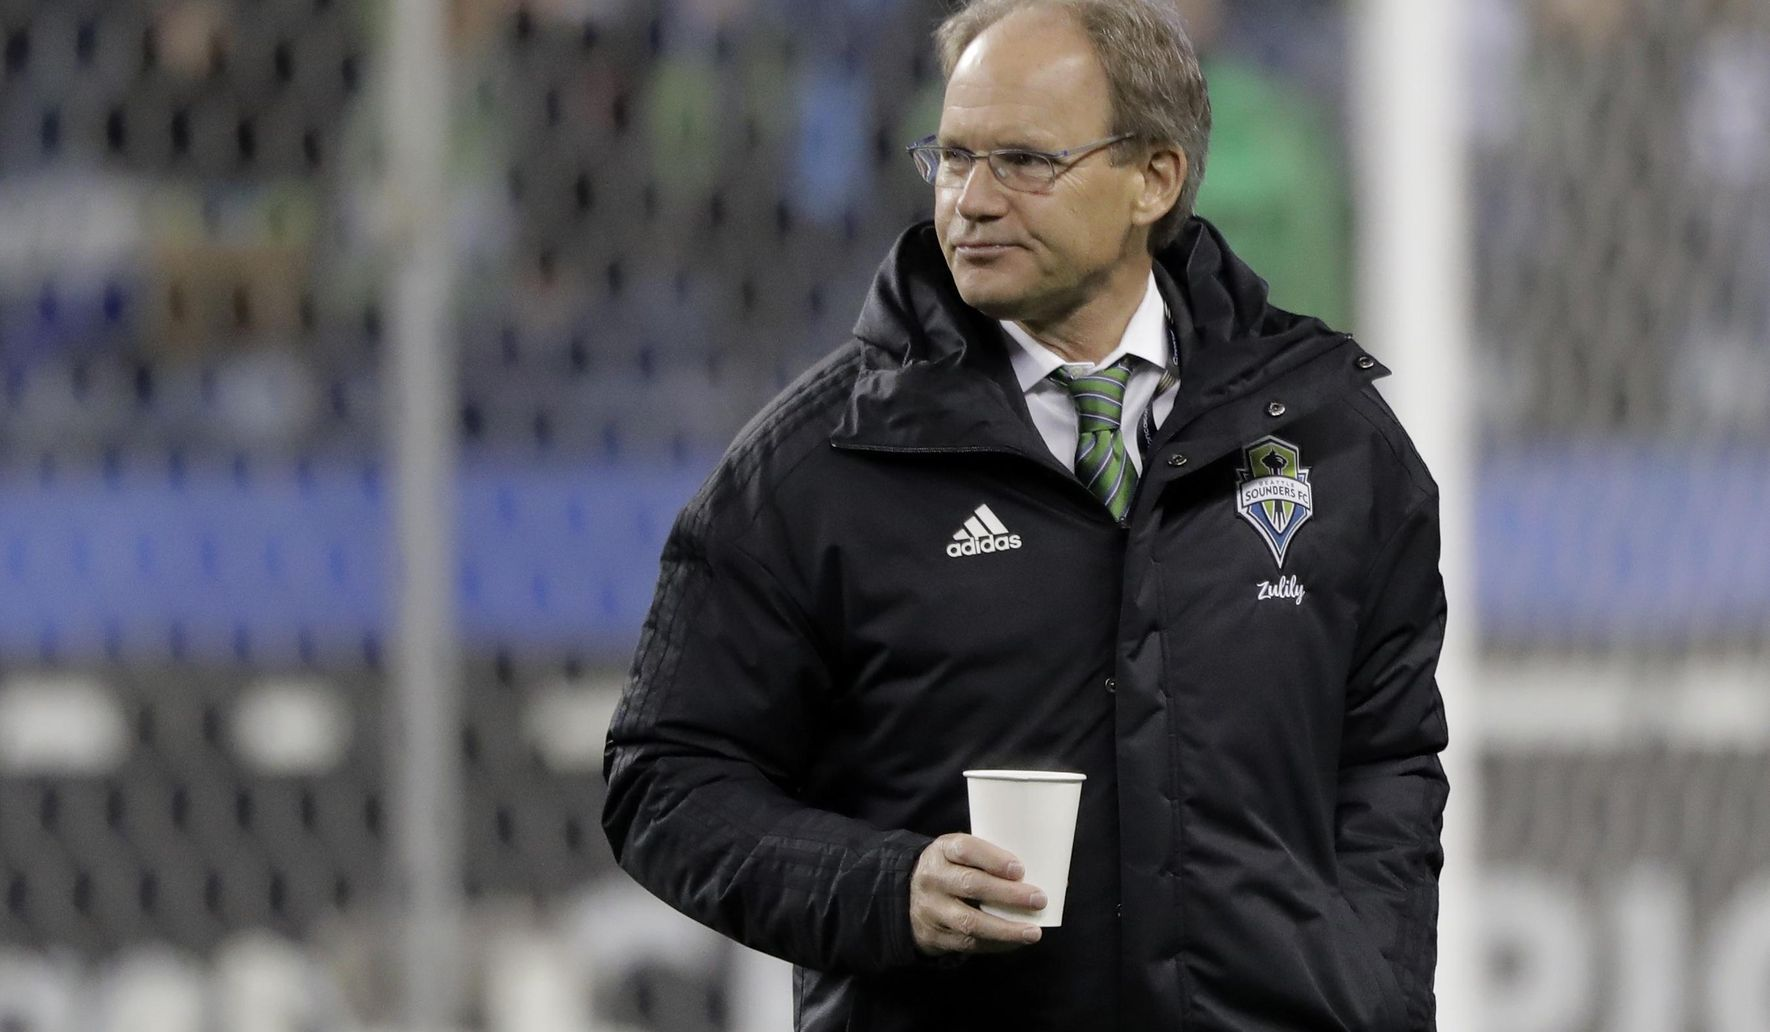 Concacaf_olimpia_sounders_soccer_68828_c0-113-2707-1691_s1770x1032